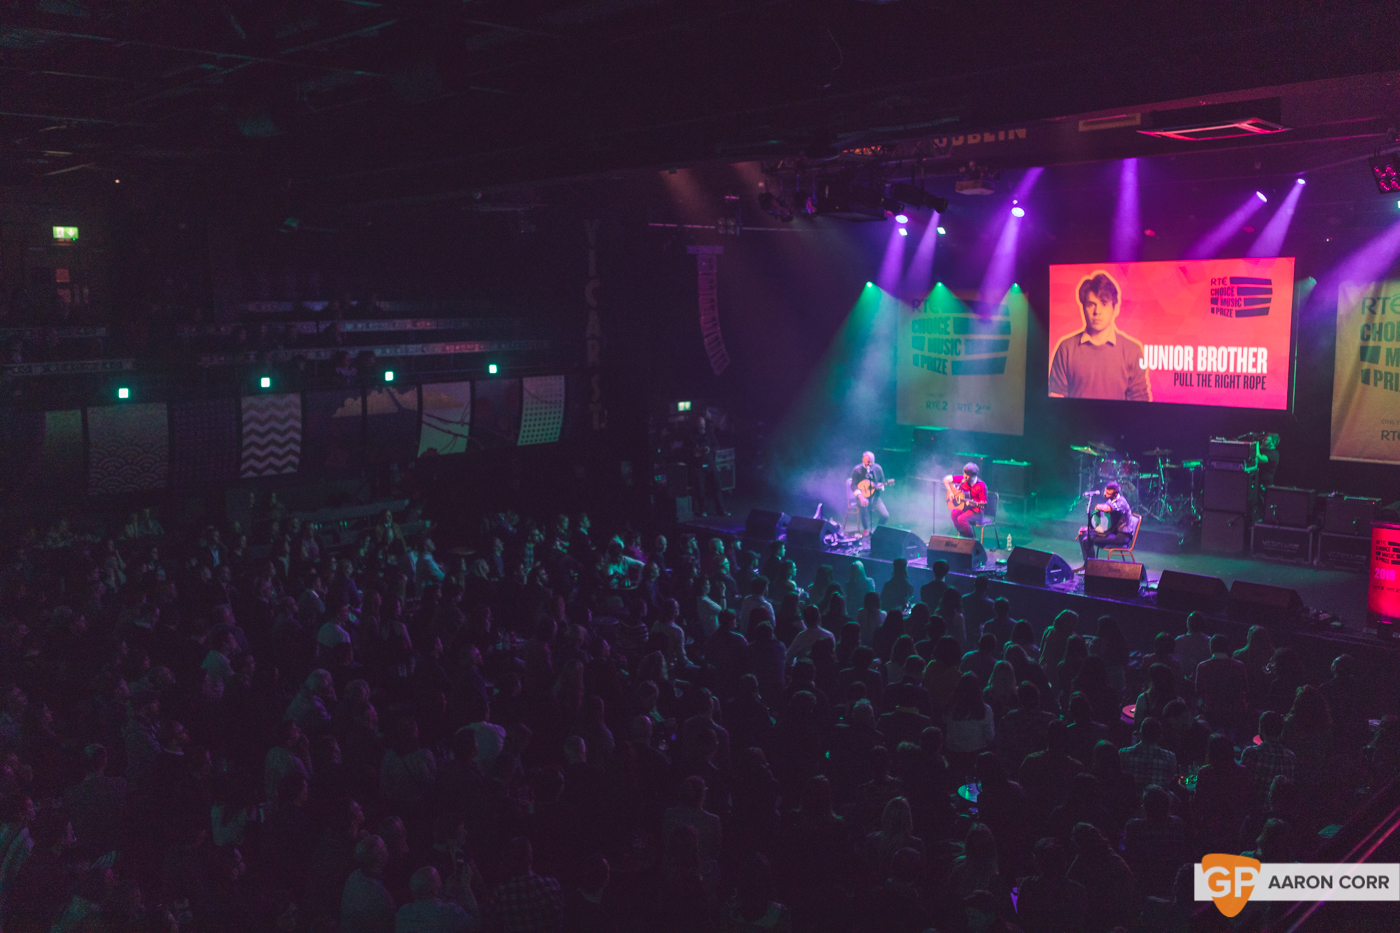 Junior Brother at Choice Music Prize 2020 in Vicar Street, Dublin on 05-Mar-20 by Aaron Corr-2537